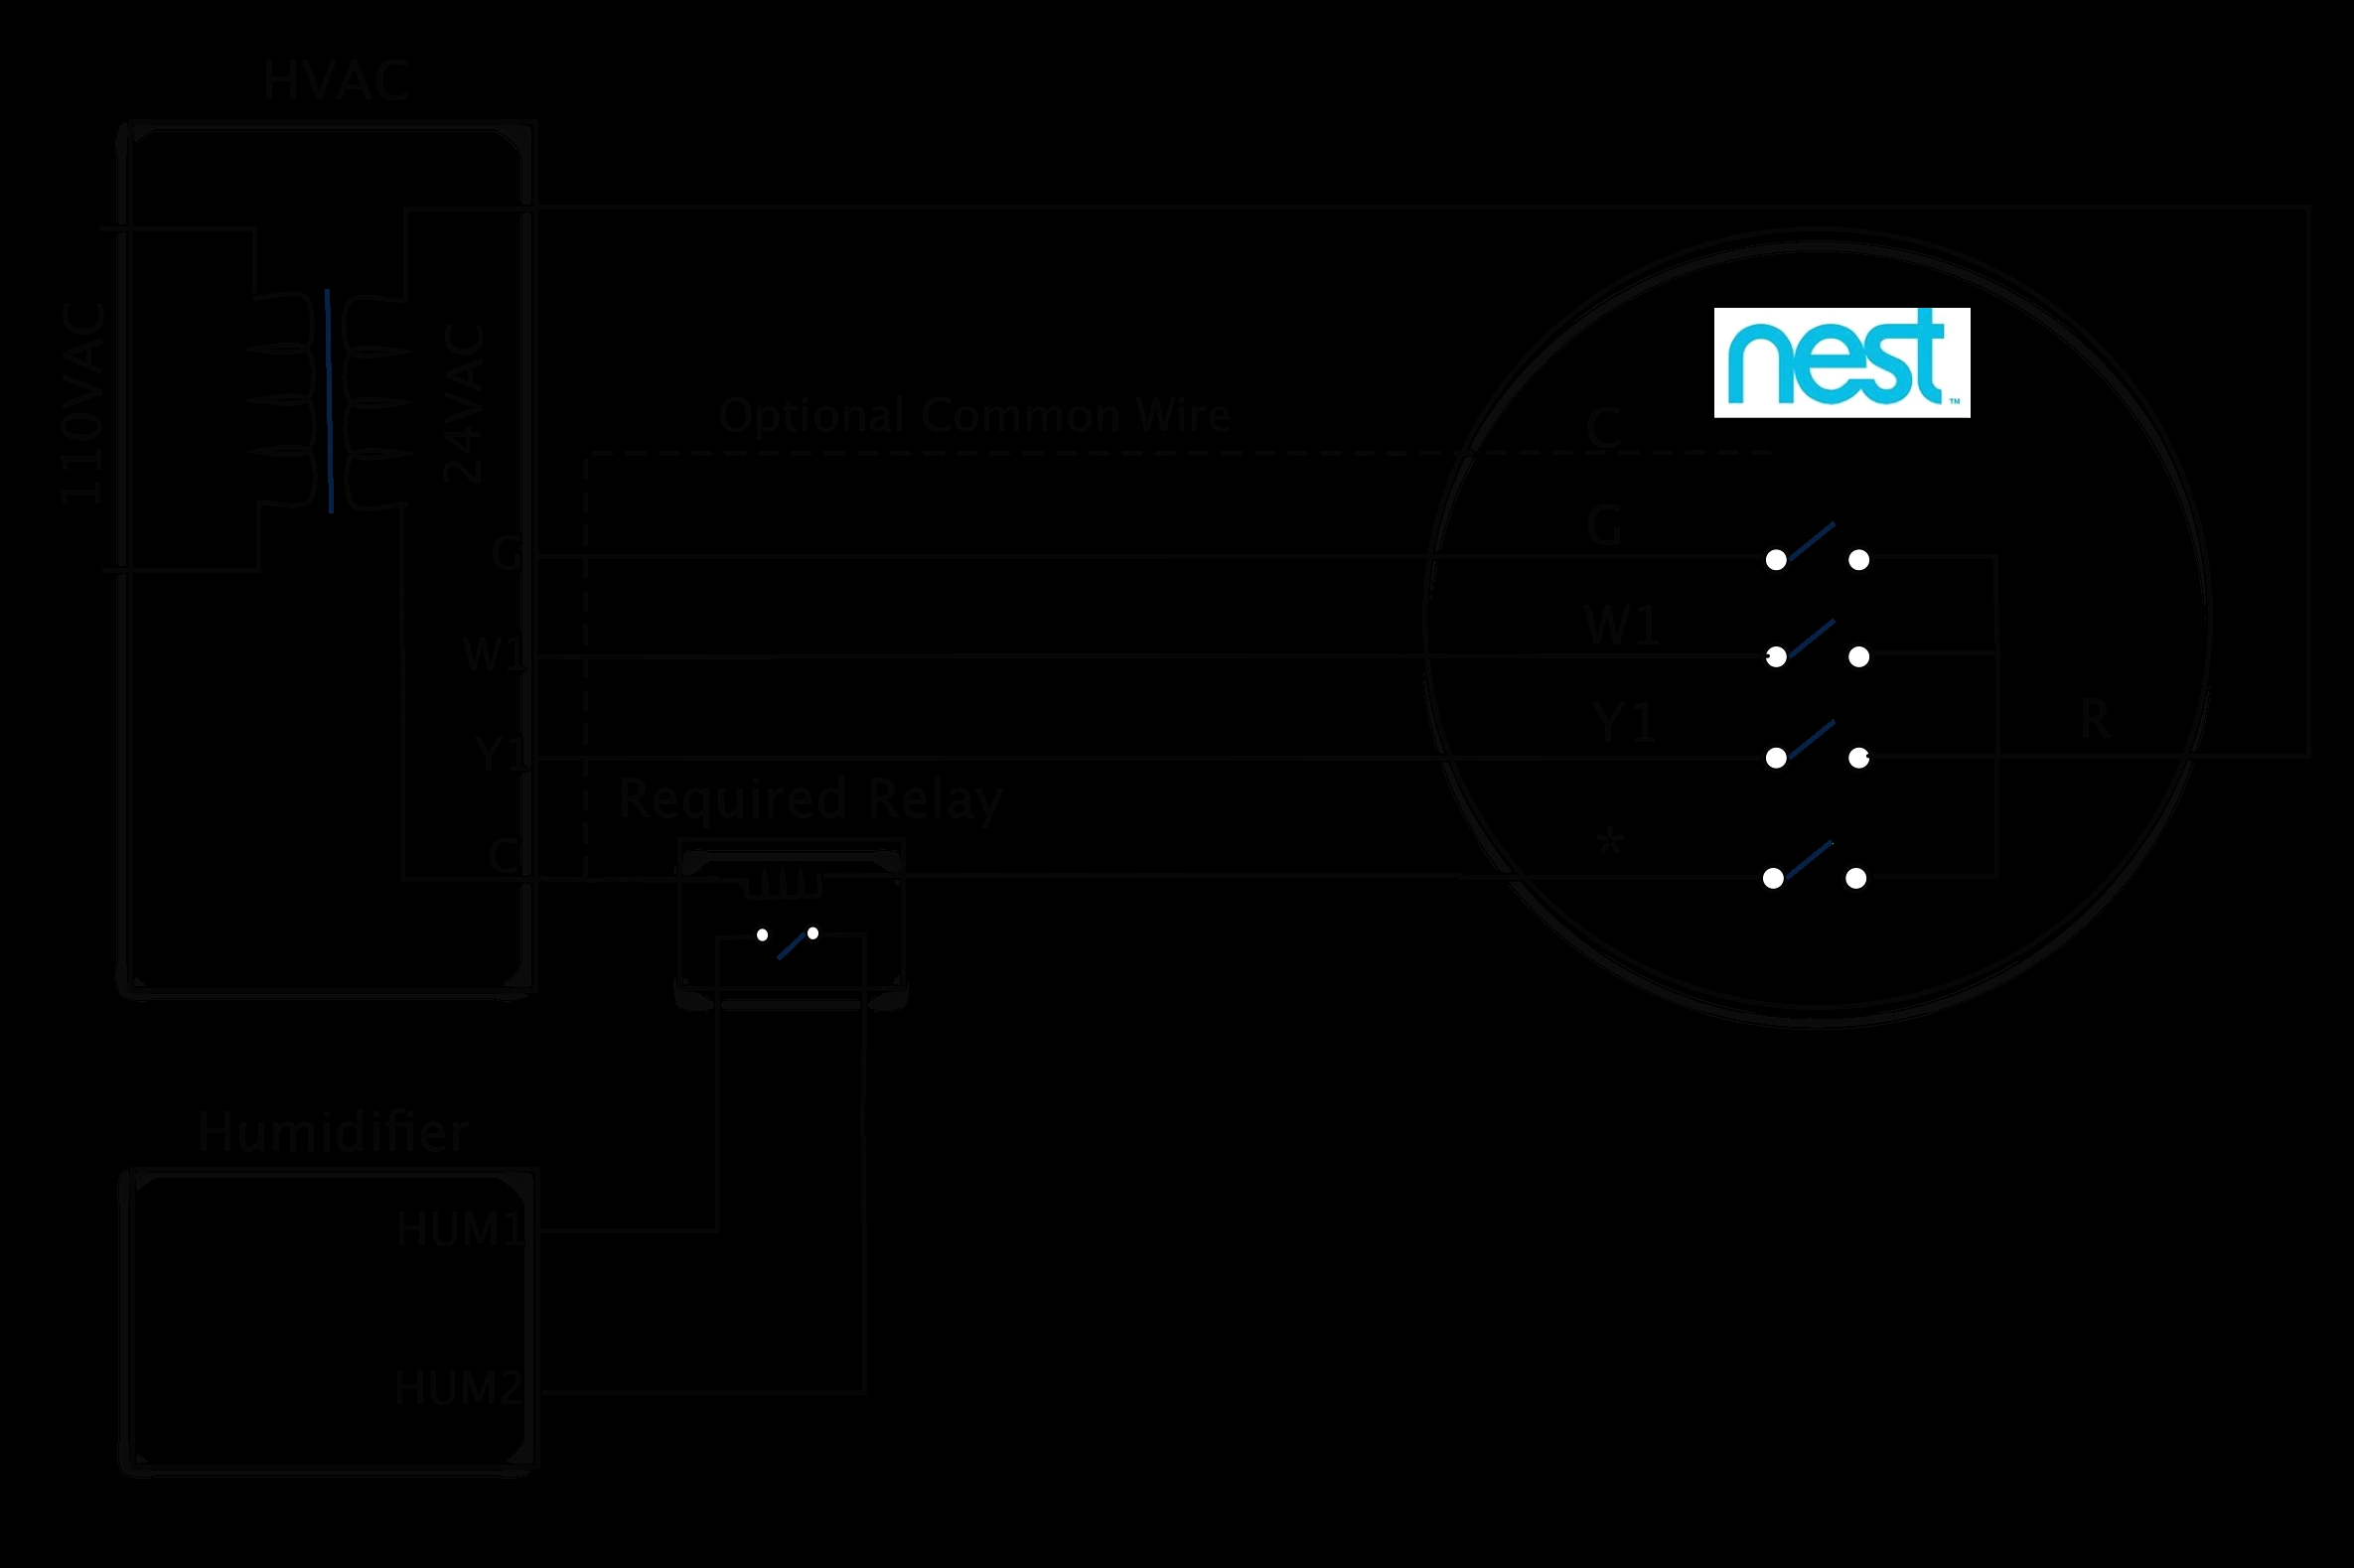 Nest thermostat Humidifier Wiring Diagram | Free Wiring Diagram on nest thermostat setup, nest thermostat with humidifier, nest thermostat wiring a up, nest thermostat relay,